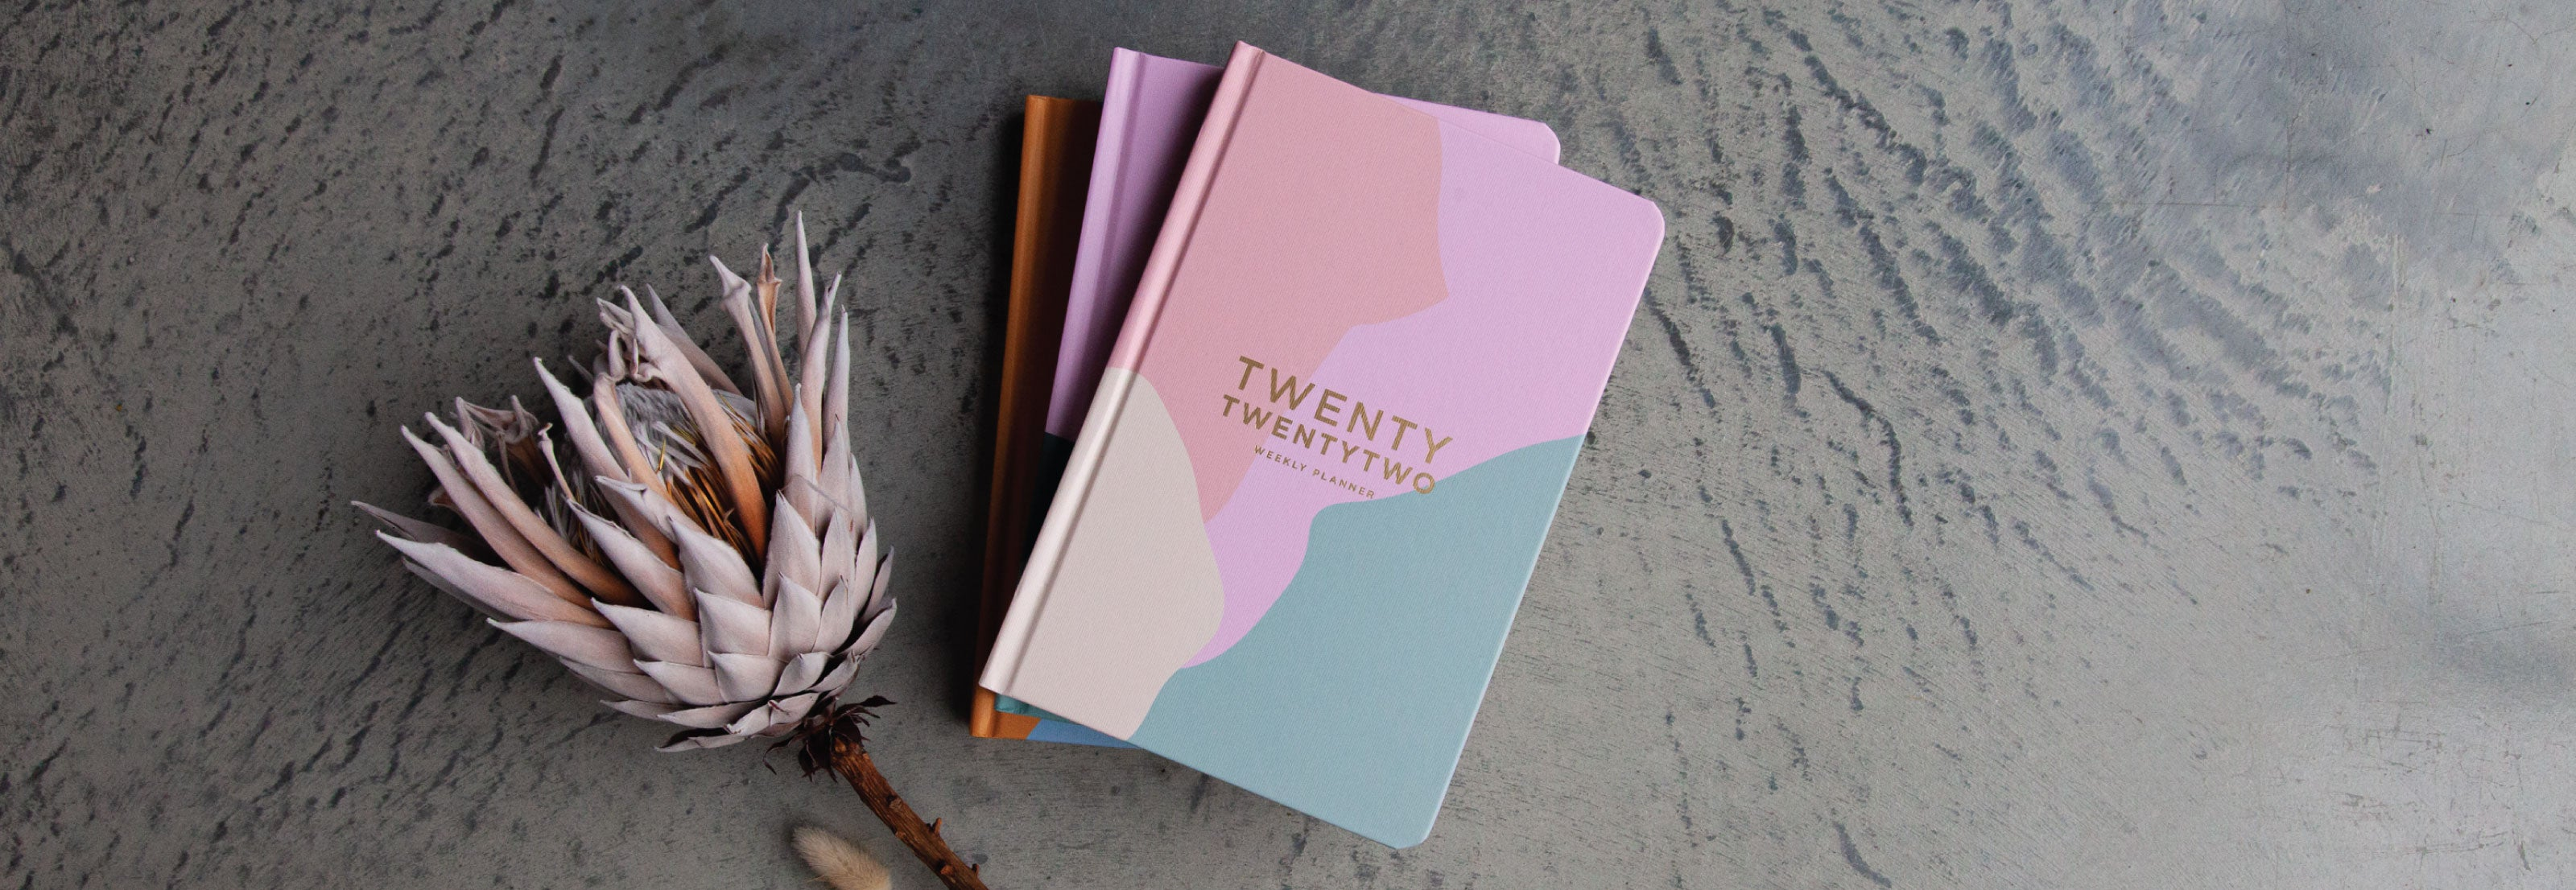 2019 Diaries & Planners 50% off